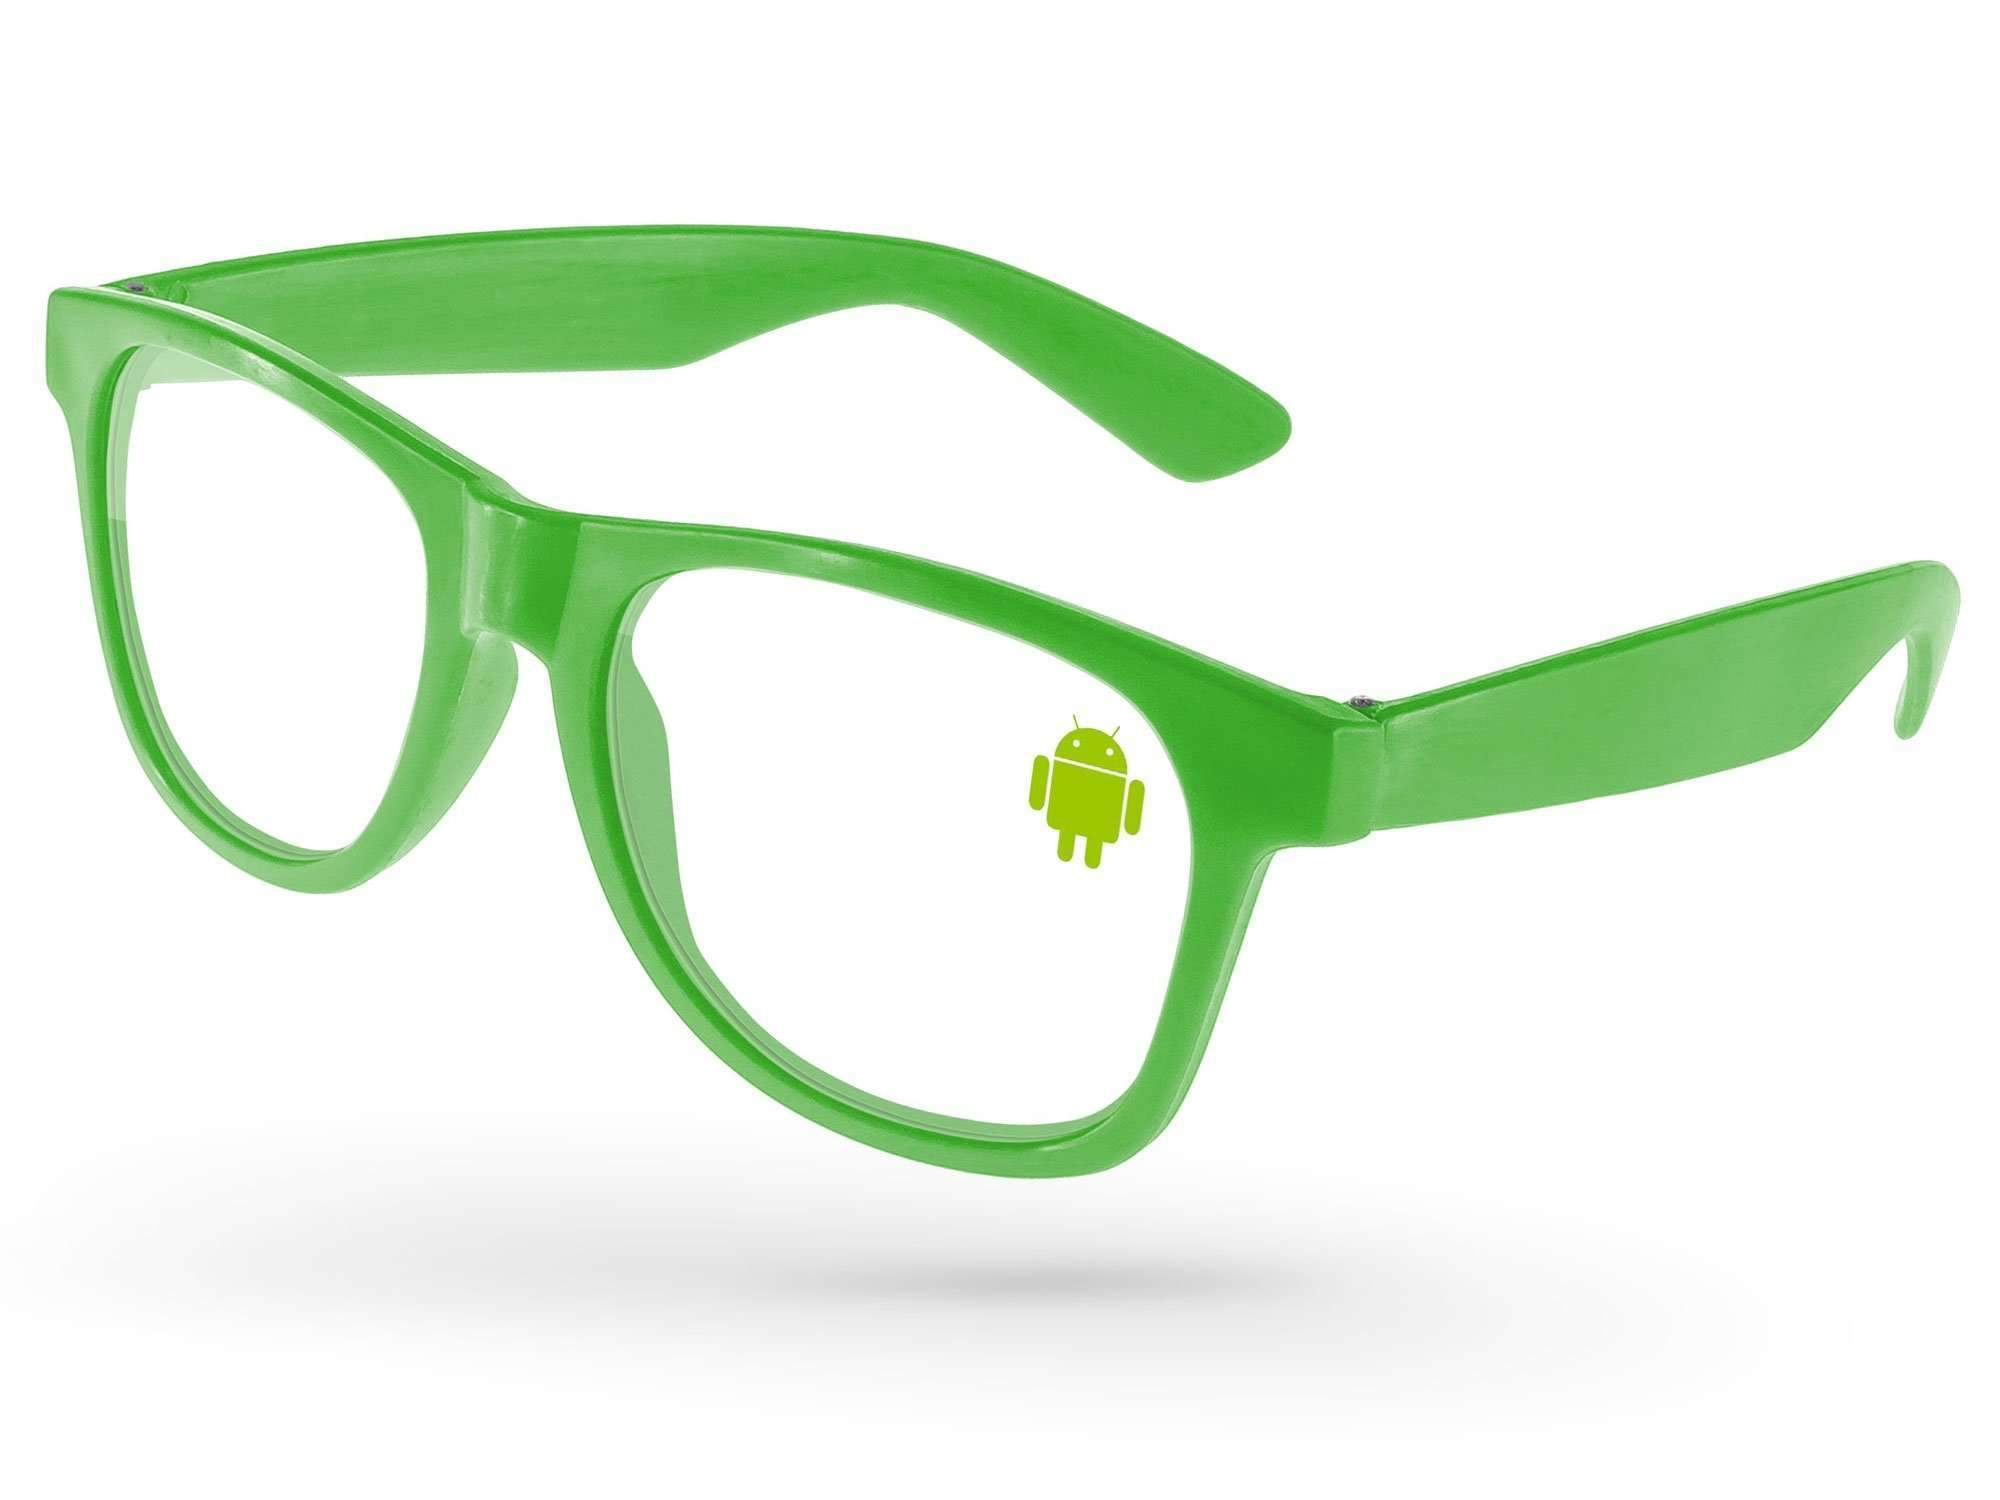 Value Retro Eyeglasses w/ 1-color lens imprint